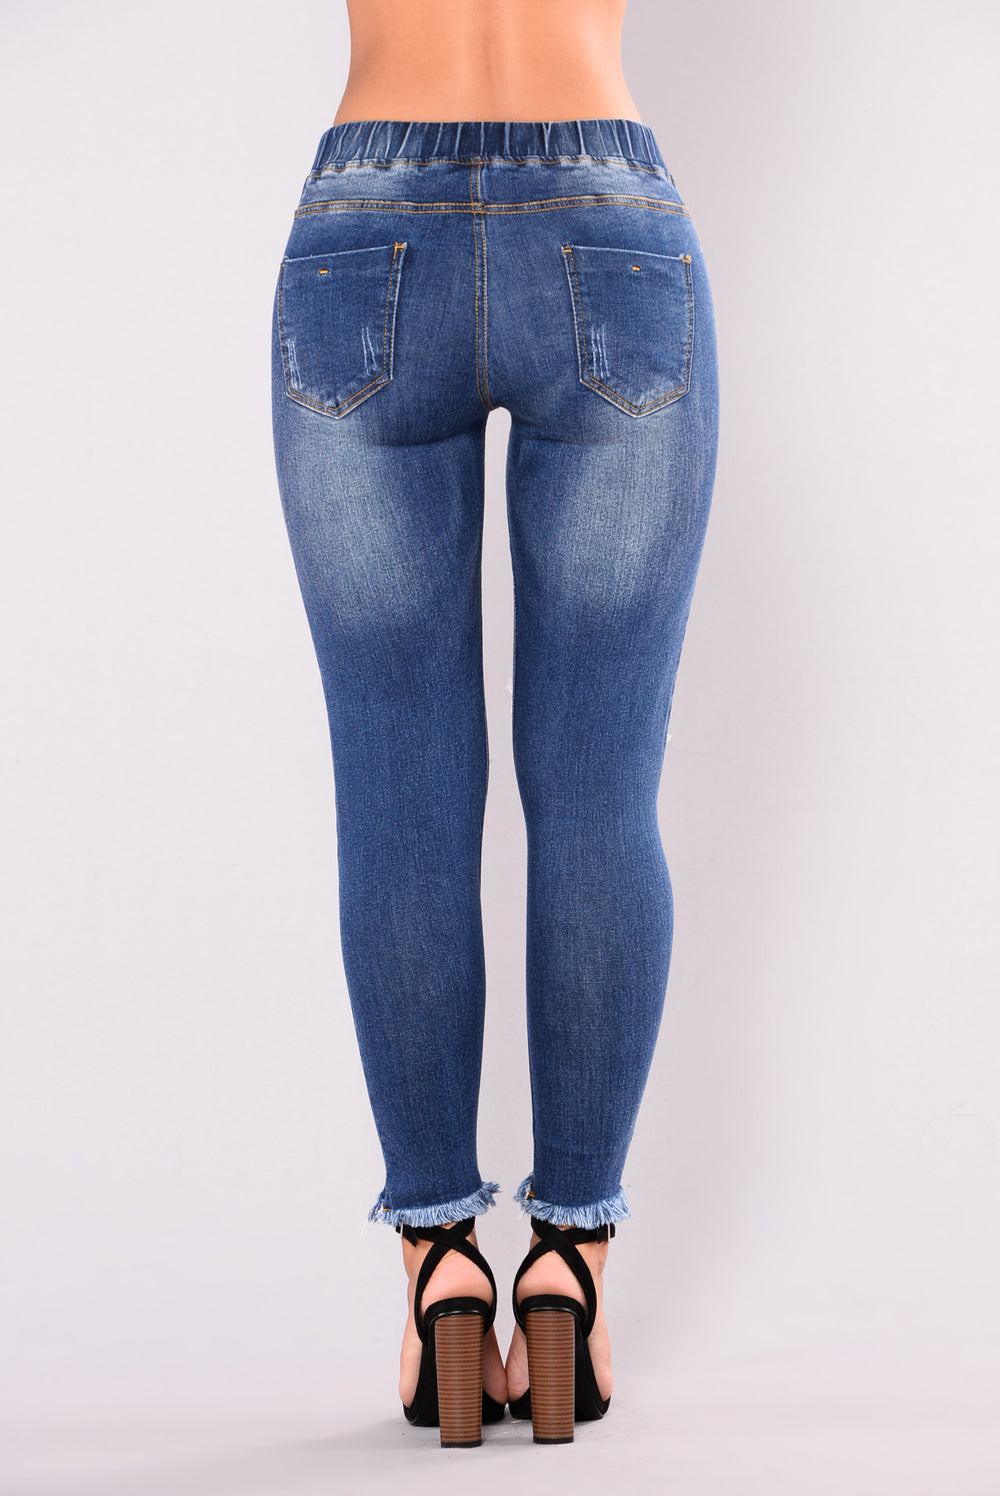 Charley Jeans - Blue